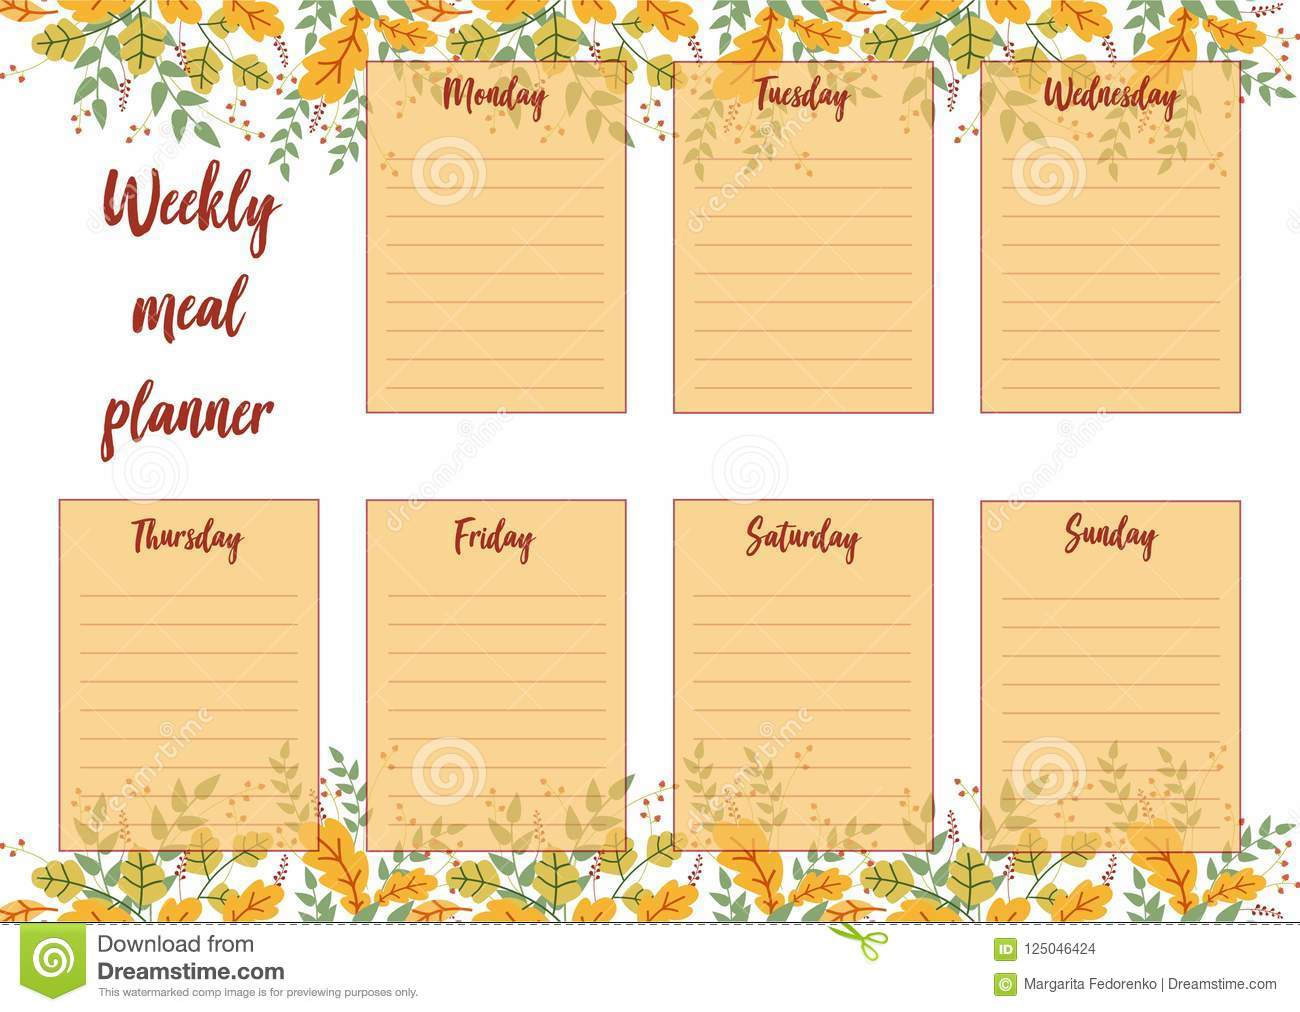 Daily Meal Planner Template from thumbs.dreamstime.com